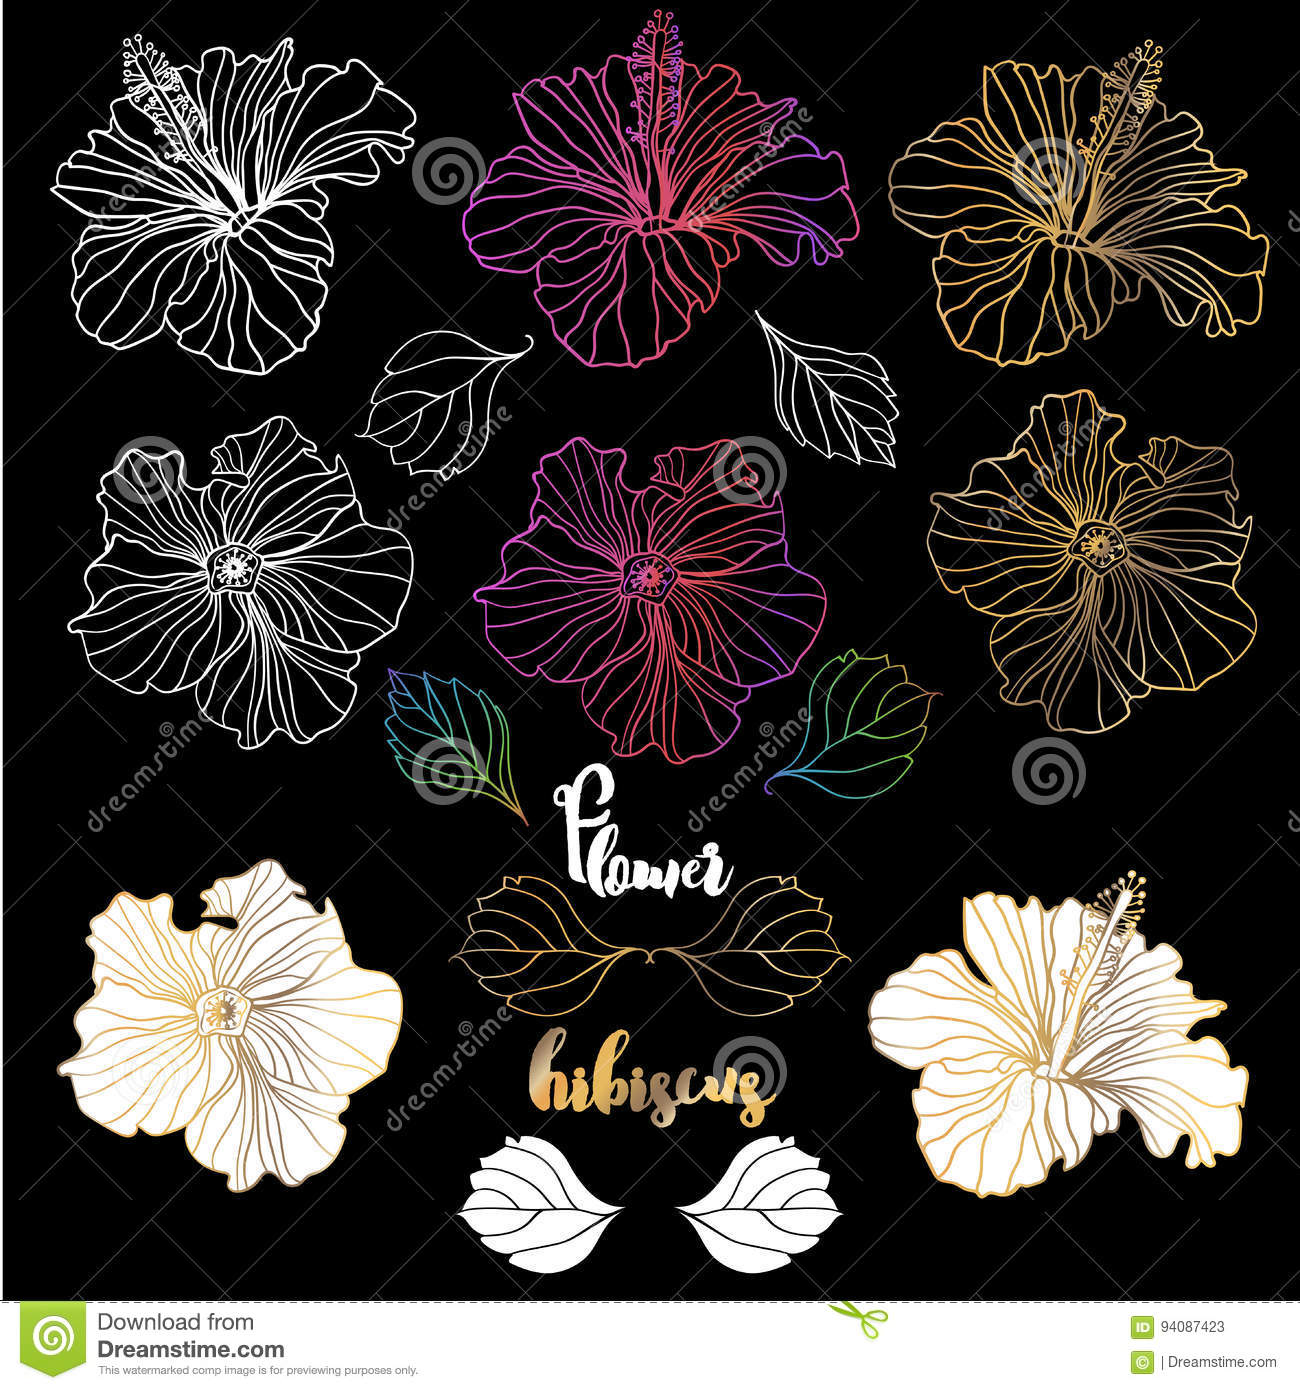 Vector Elegant Decorative Hibiscus Flowers Design Elements Stock